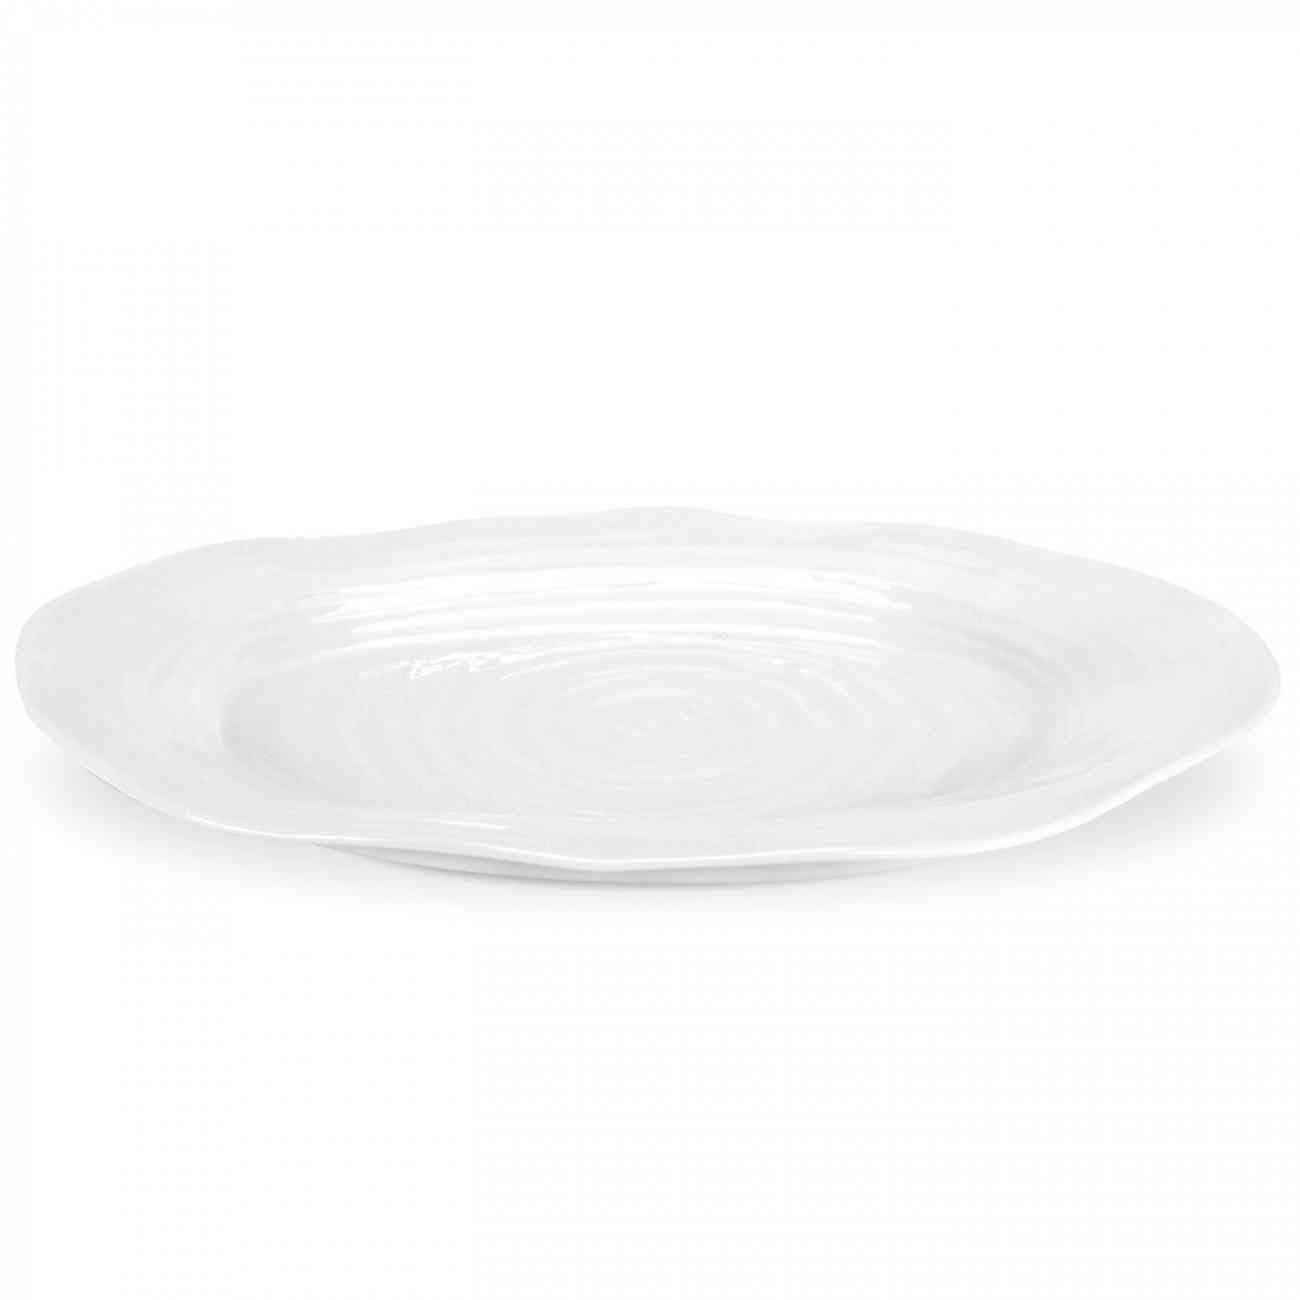 SOPHIE CONRAN PLATE LARGE OVAL 43 x 34cm CPW76837-X